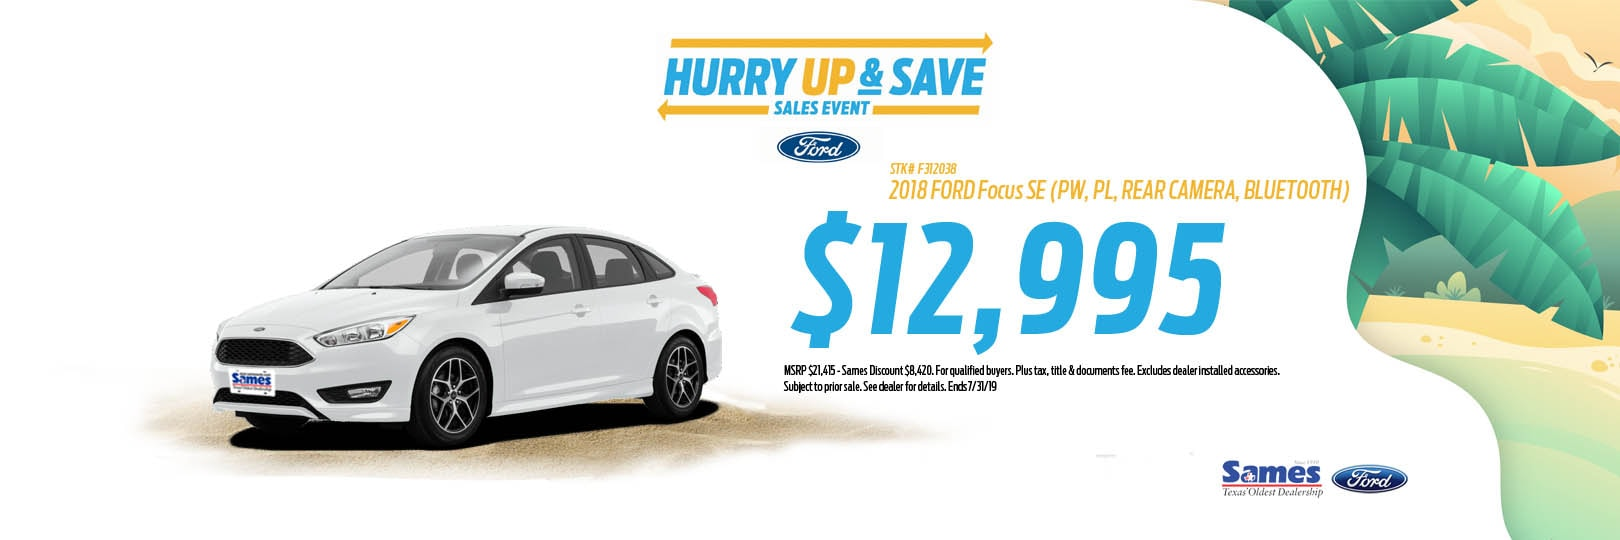 Sames Ford New Used Ford Cars Near Encinal Tx